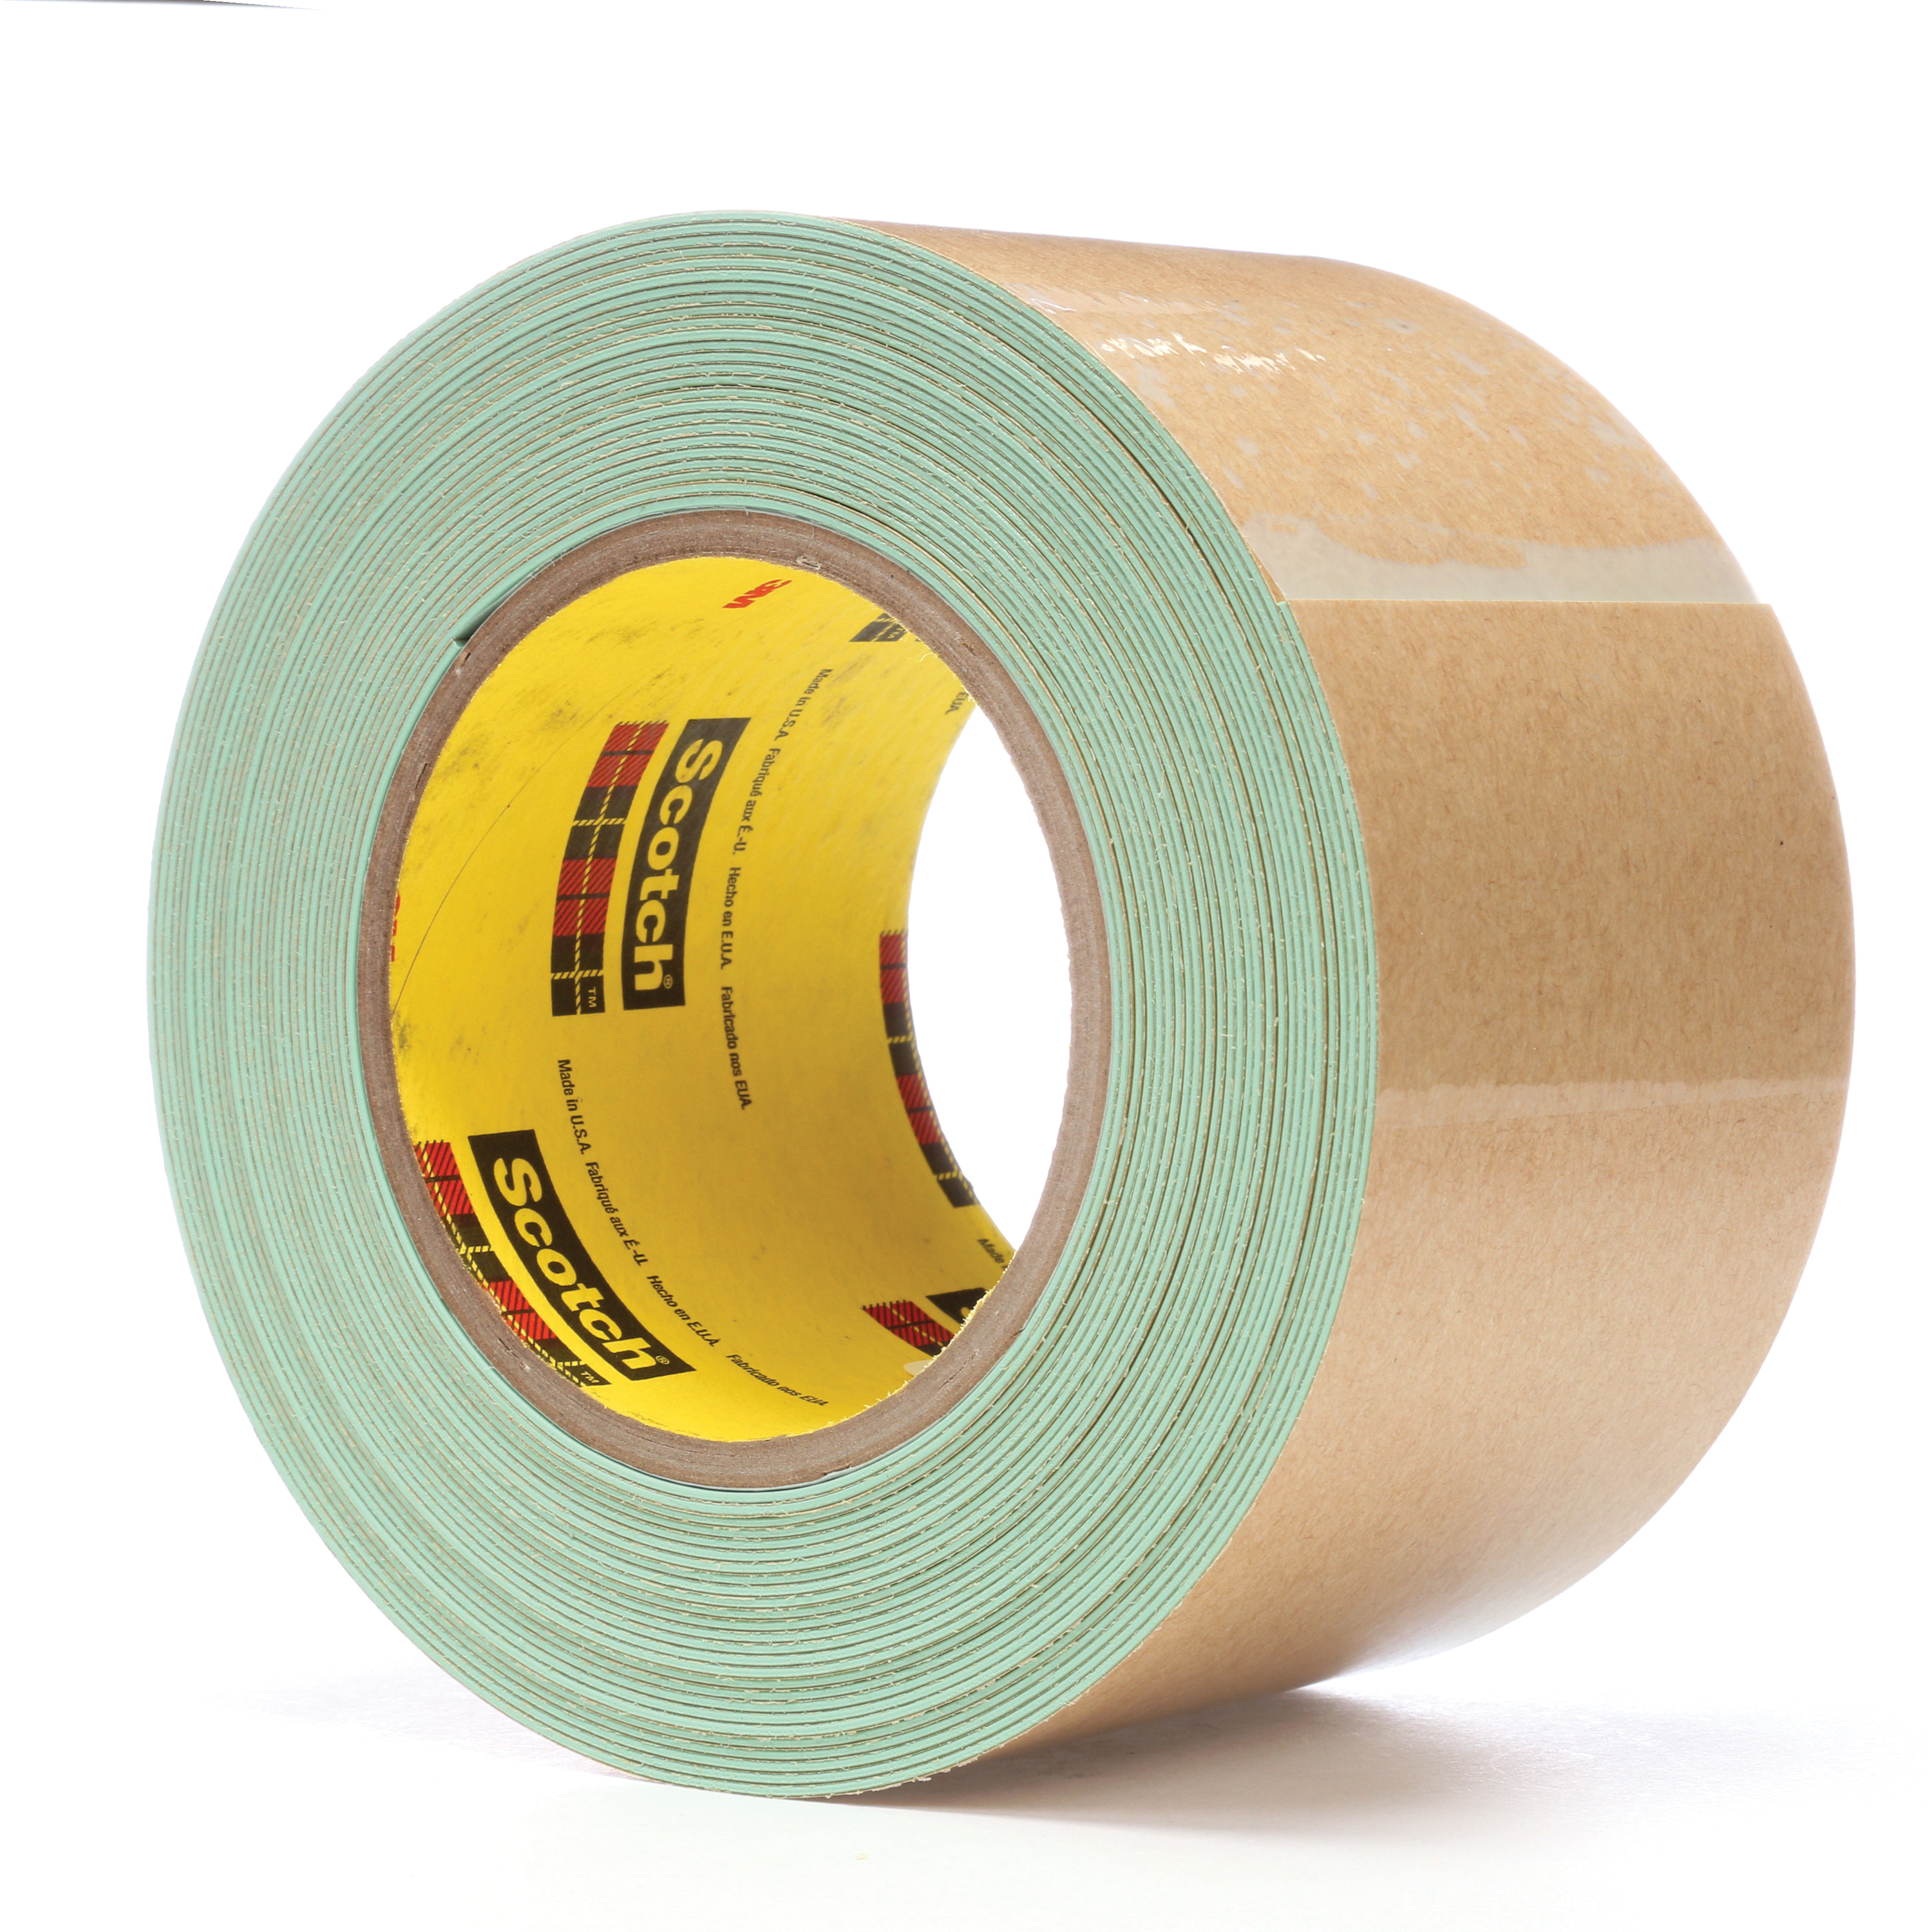 3M™ 021200-24359 Impact Stripping Tape, 10 yd L x 3 in W, 36 mil THK, Acrylic Adhesive, Rubber Backing